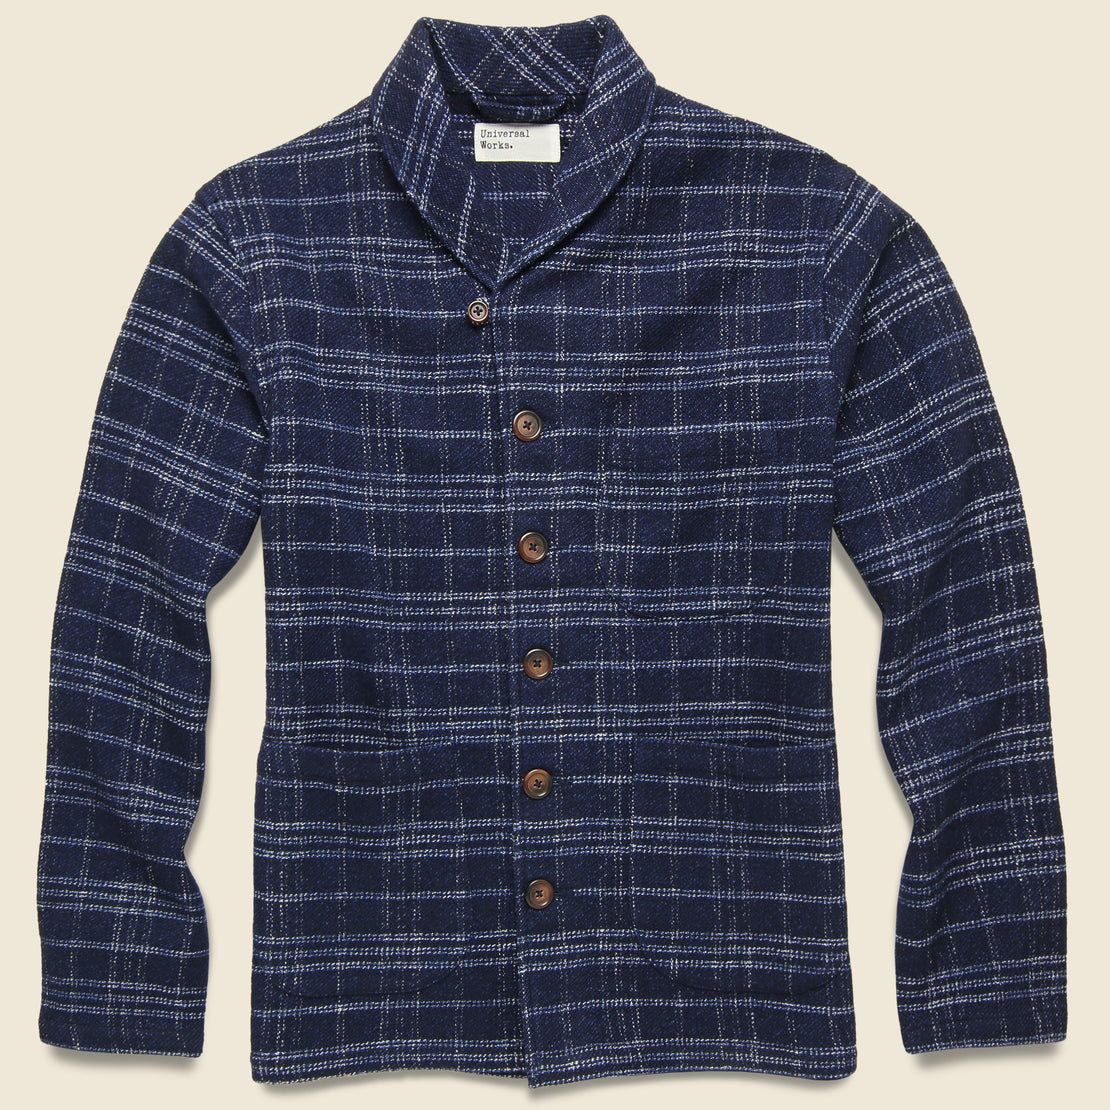 Universal Works Check Prairie Jacket - Indigo